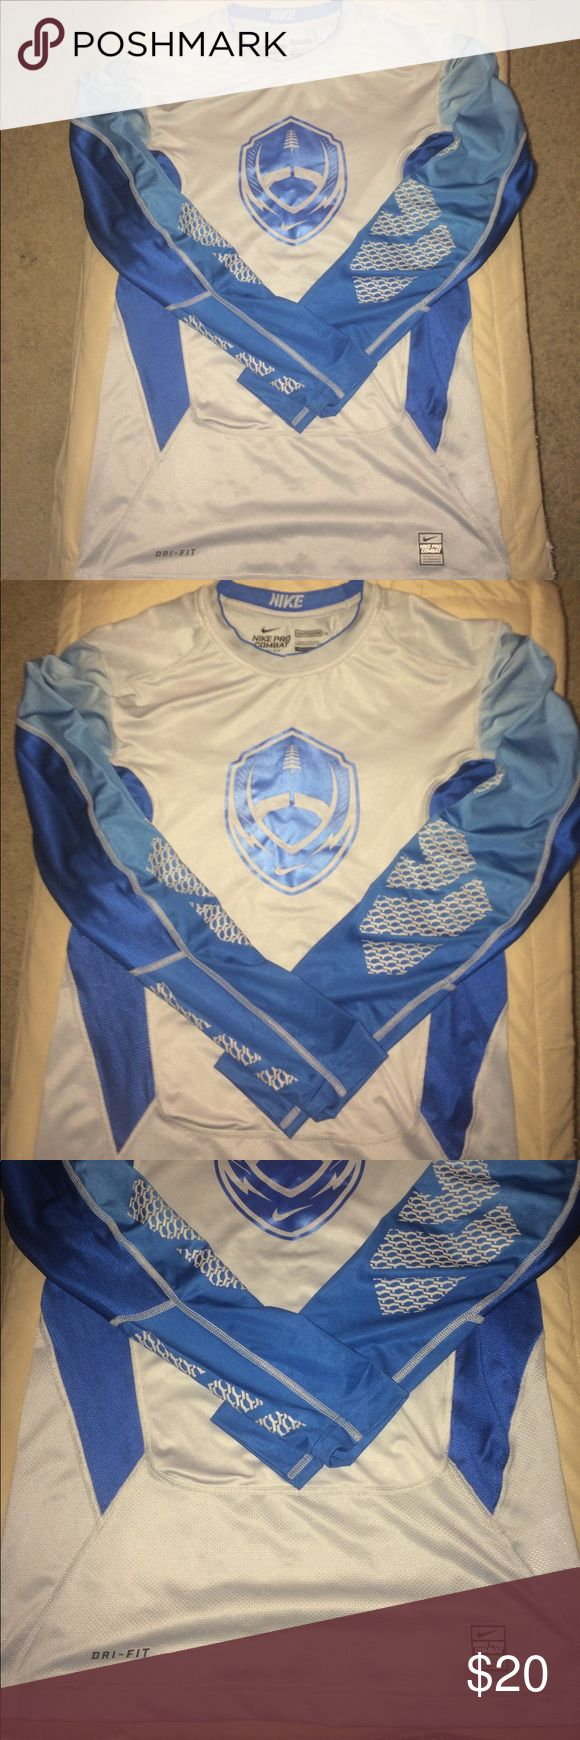 Nike compression longsleeve shirt men's sz Large Nike dri-fit compression longsleeve shirt men's size large. Used but in very good condition no holes stains or tears. Shirt has Nike football logo on the front. Please look closely at all pictures before purchasing. Nike Shirts Tees - Long Sleeve